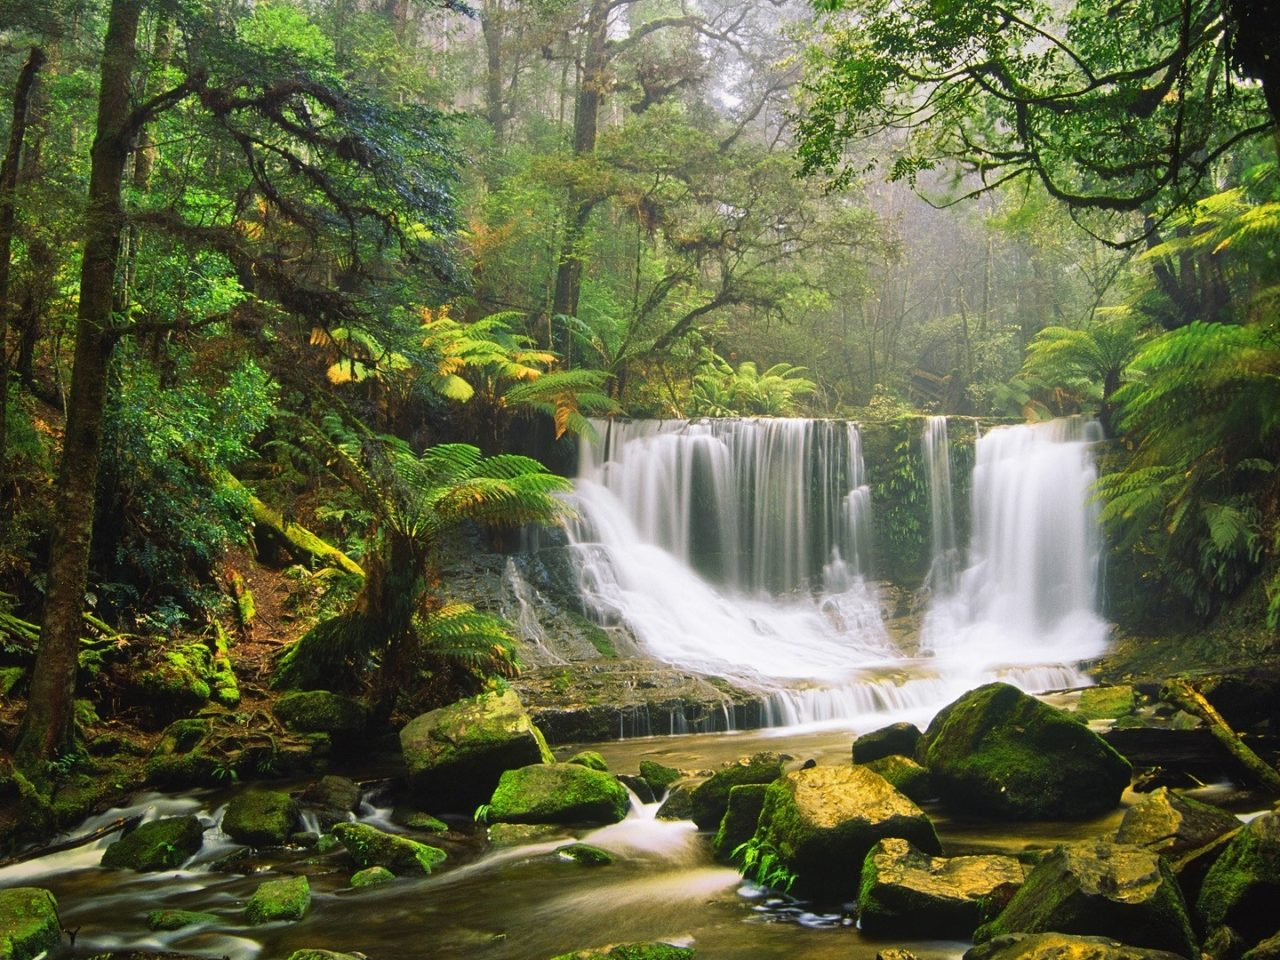 Rain Fall On Flowers Wallpaper Waterfall Rocks Moss Green Forest Tree Fern Australian